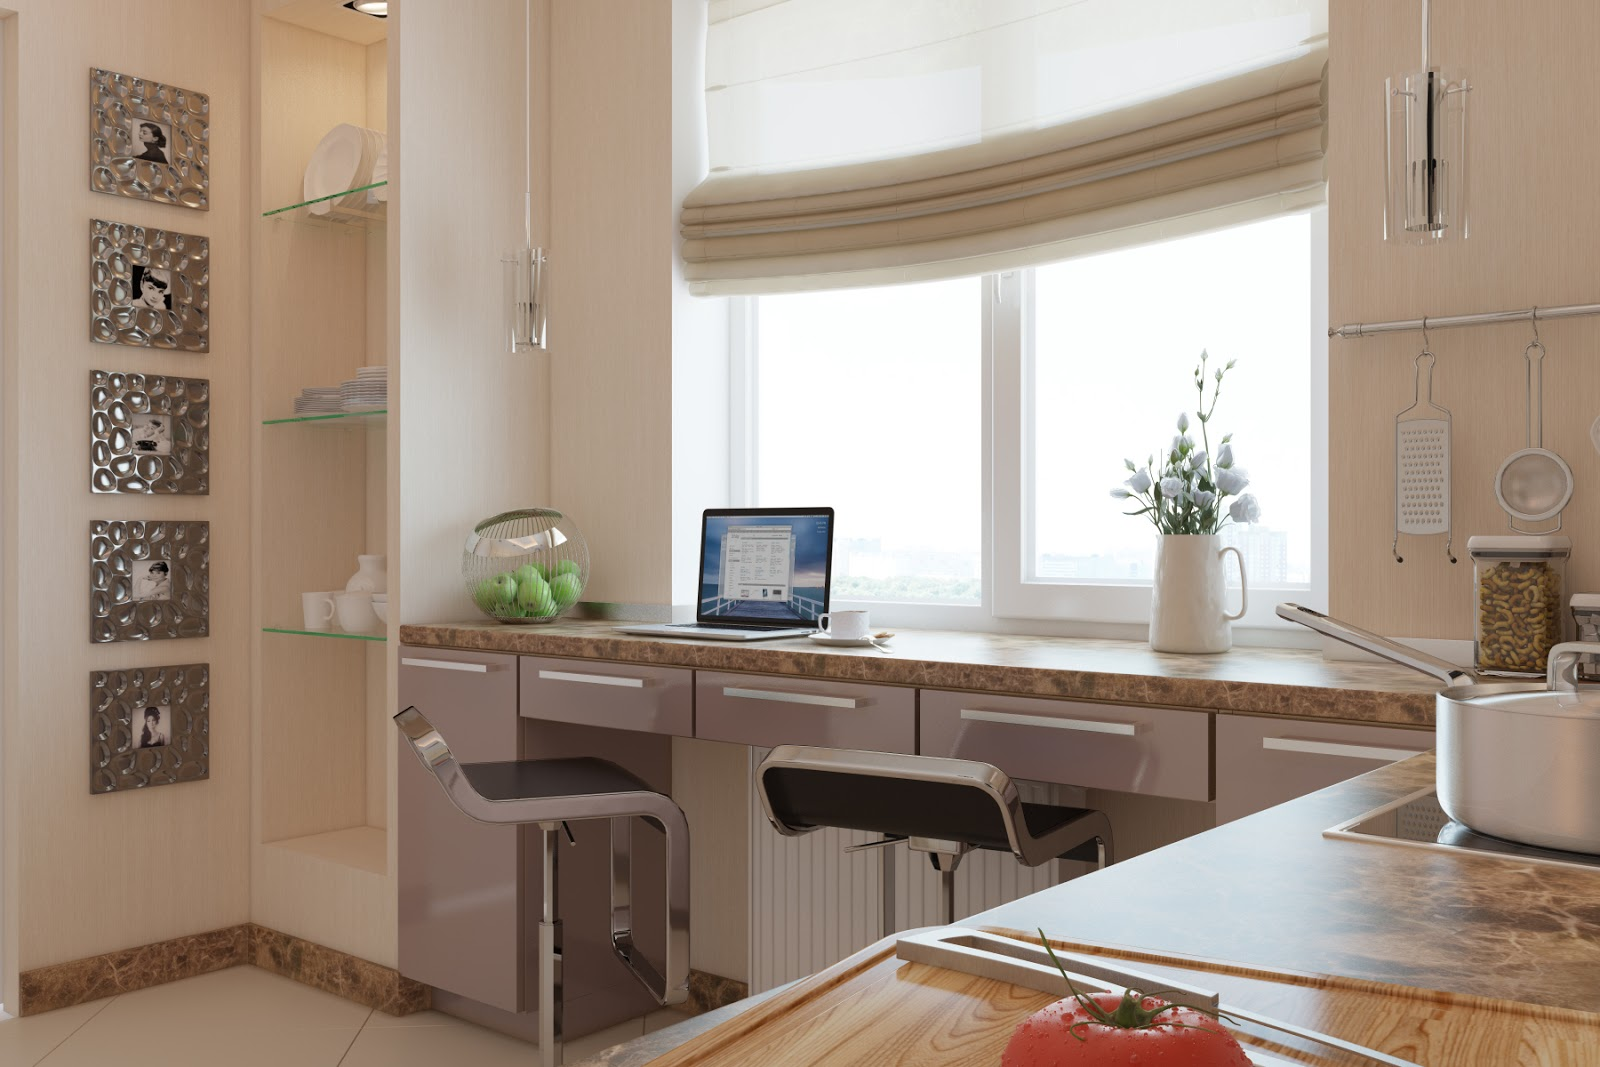 Functional windowsill in modern style with shallow bar stools